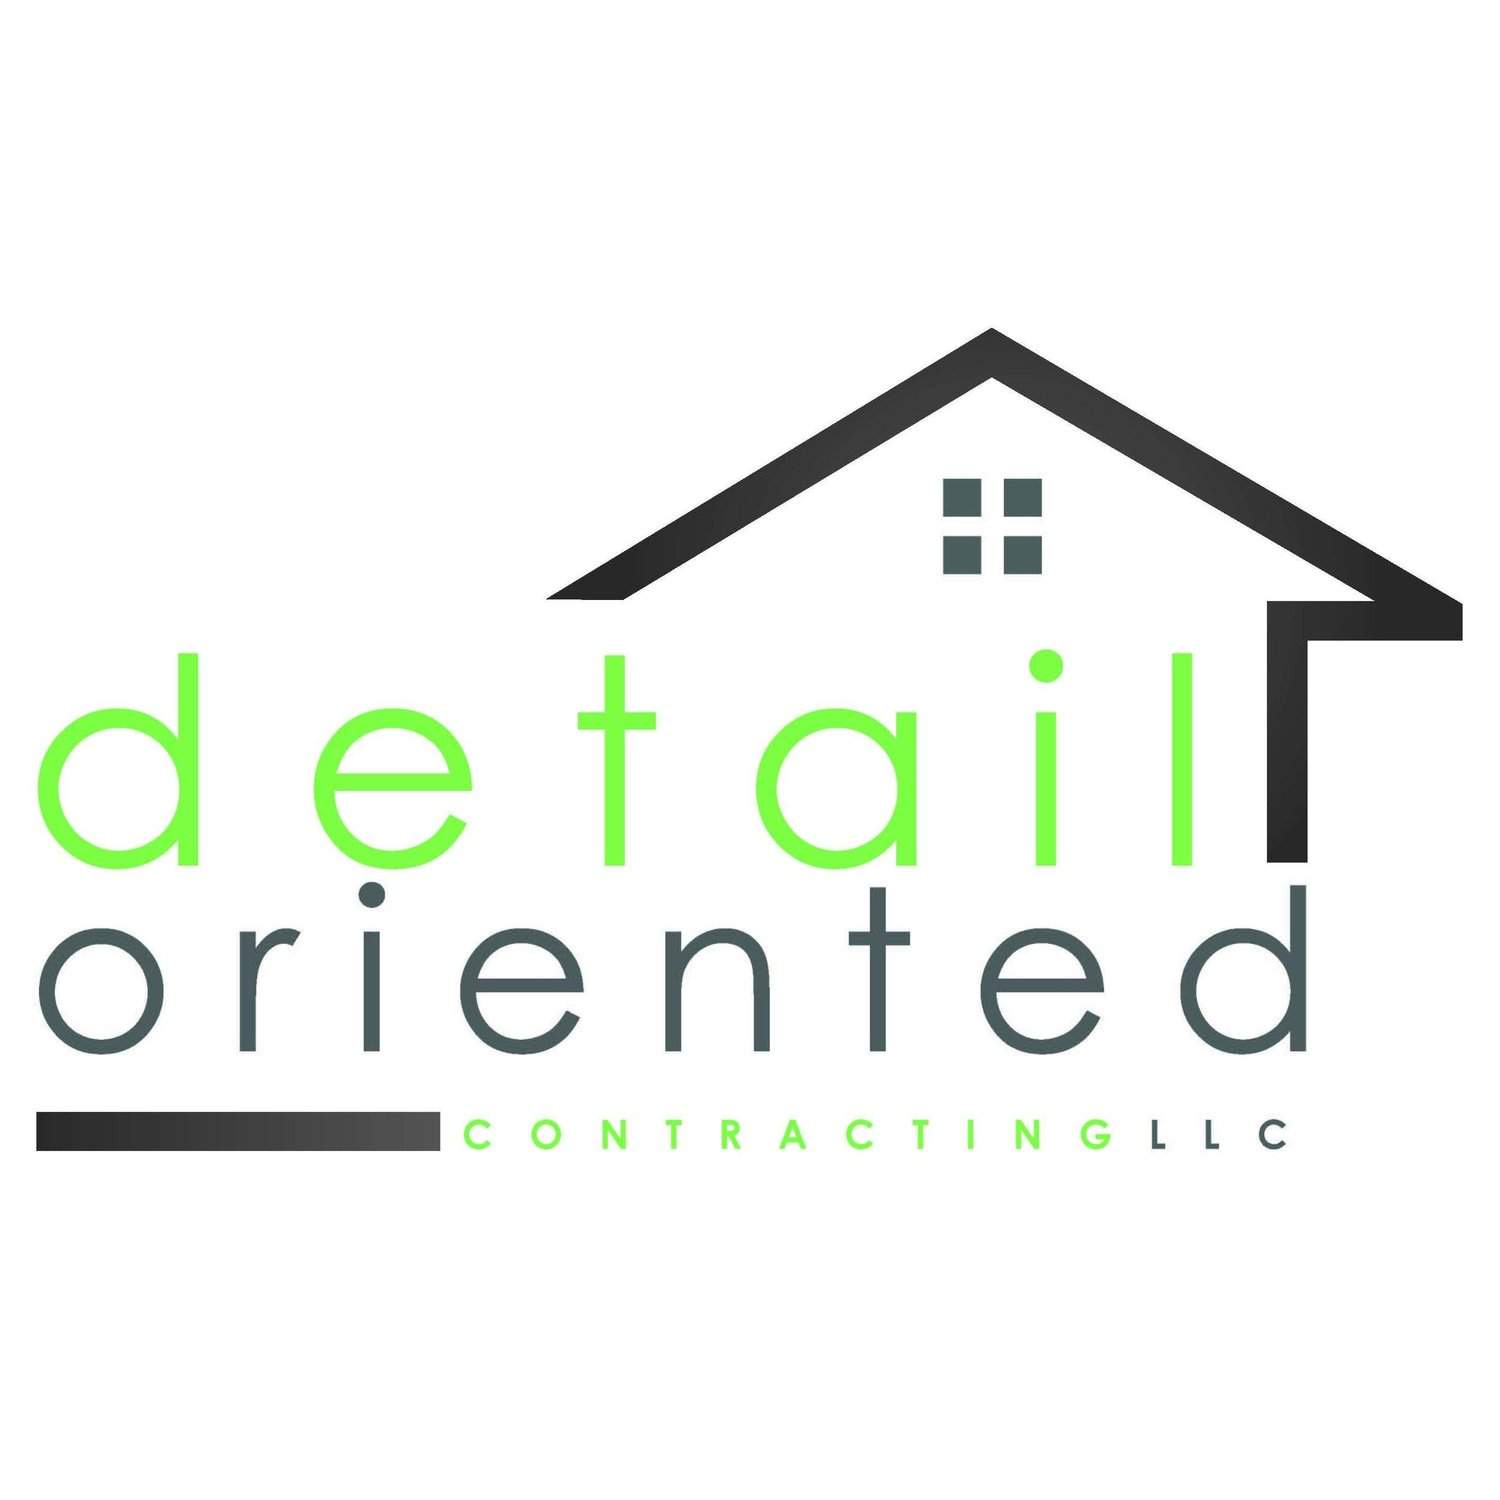 detail oriented contracting llc